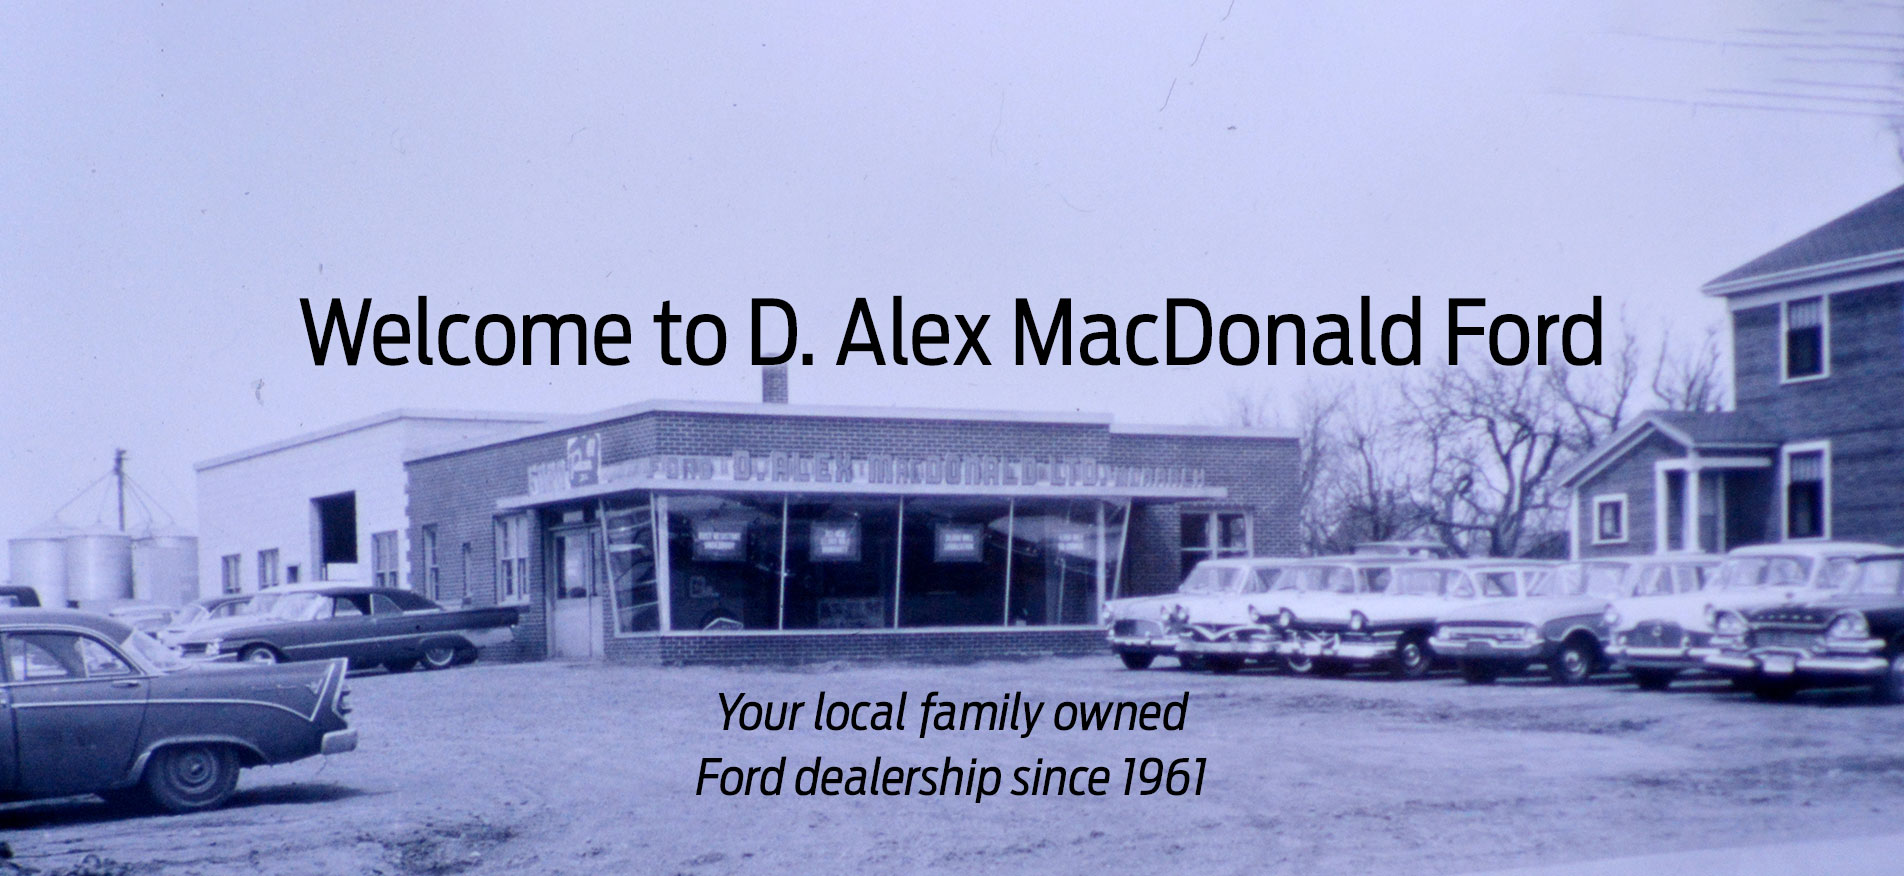 d alex macdonald ford